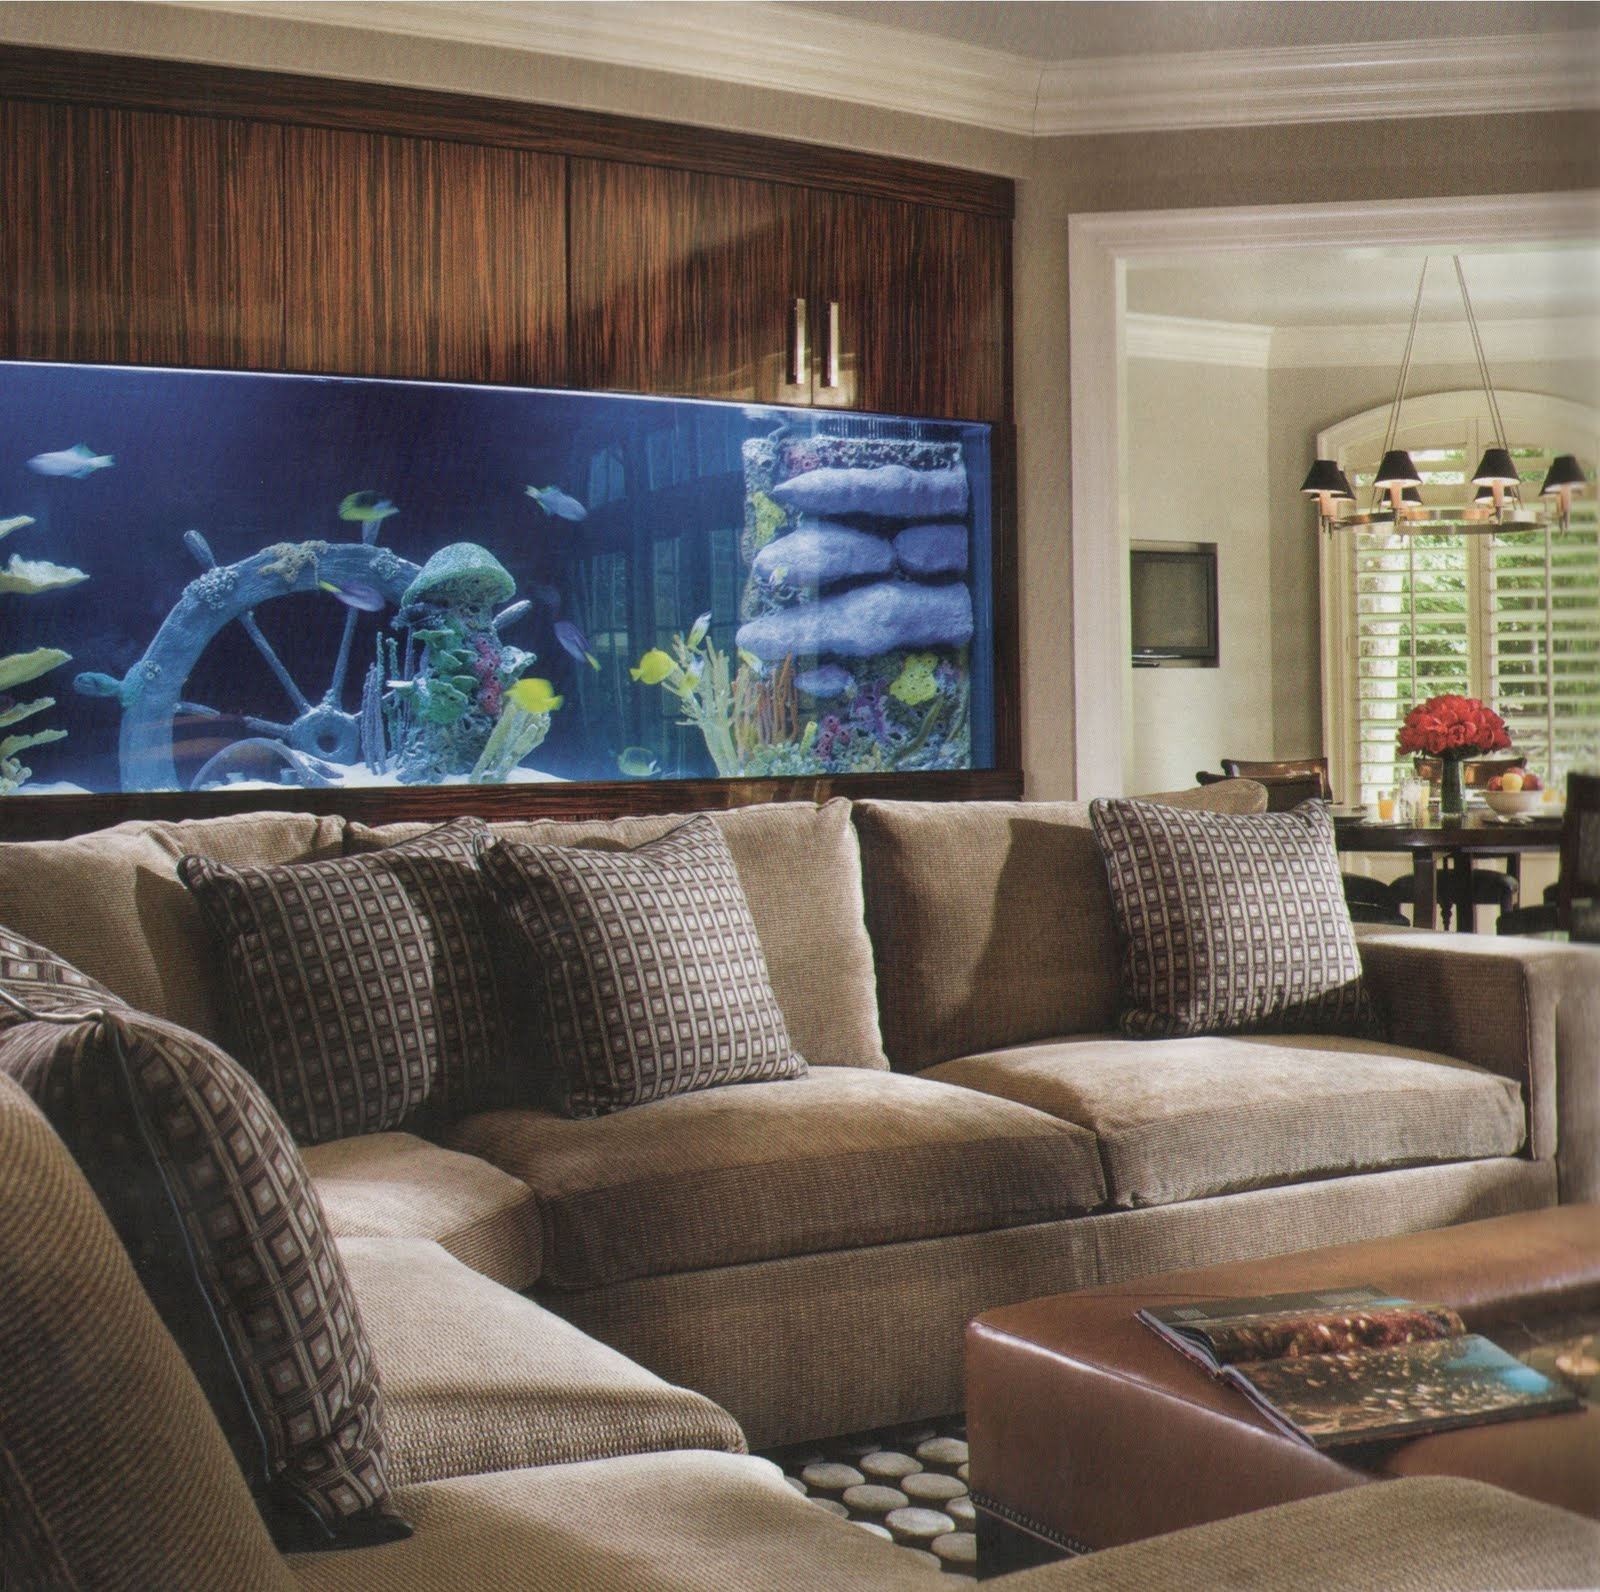 Vintage Aquarium In Living Room